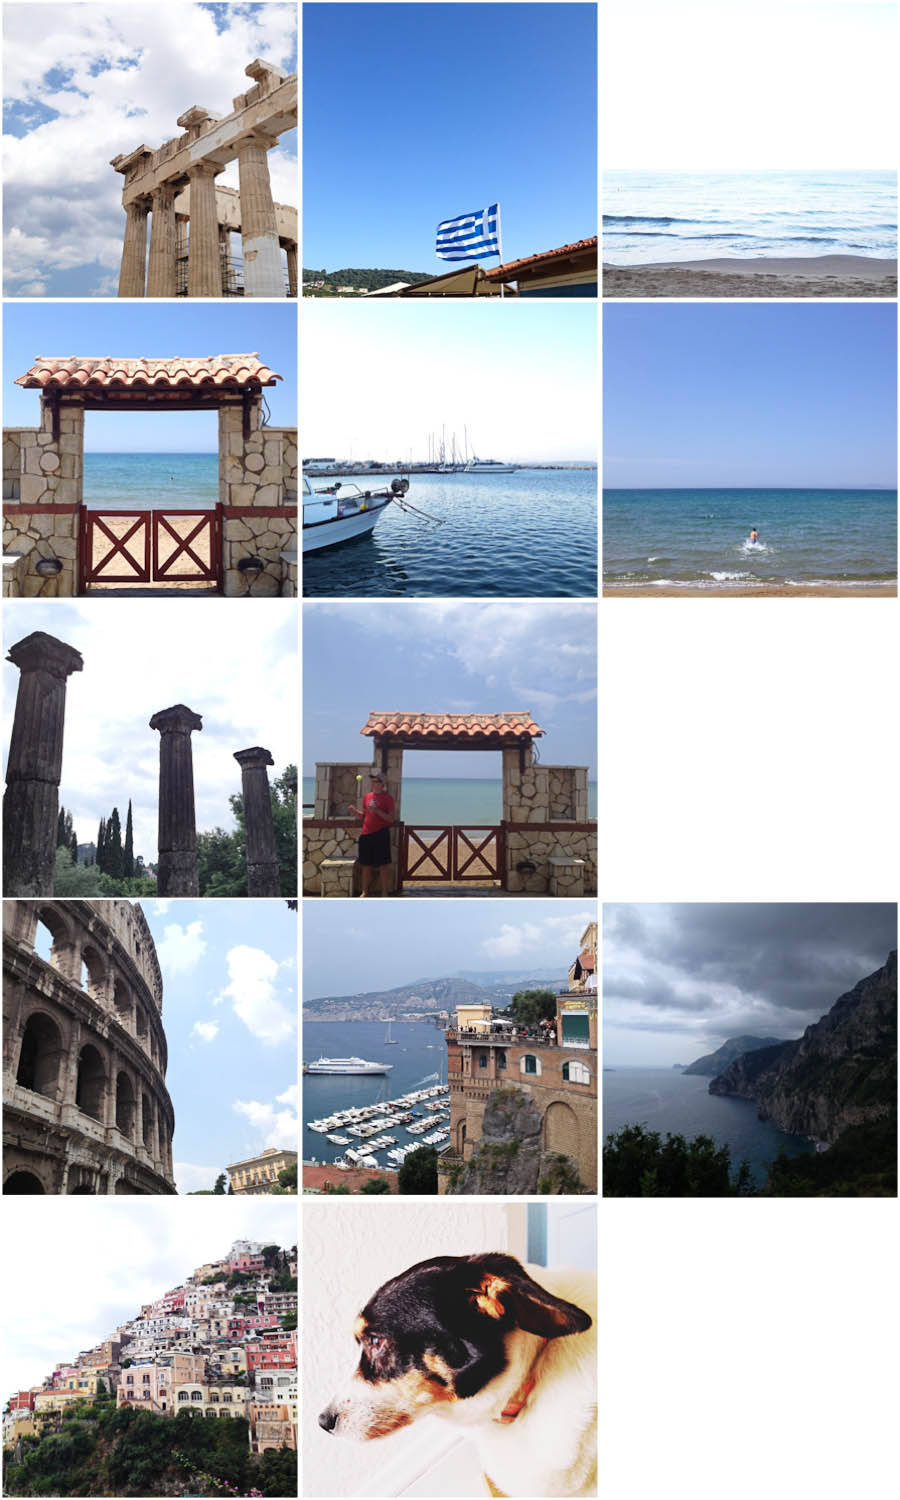 Row 1: Parthenon | Greek flag flying | Ionian Sea; Row 2: Our hotel | Dinner at the port of Katakolon, Greece | Cal swimming; Row 3: Olympia | Cal; Row 4: Colosseum | Sorrento | Amalfi Coast; Row 5: Positano | Sweet Violet